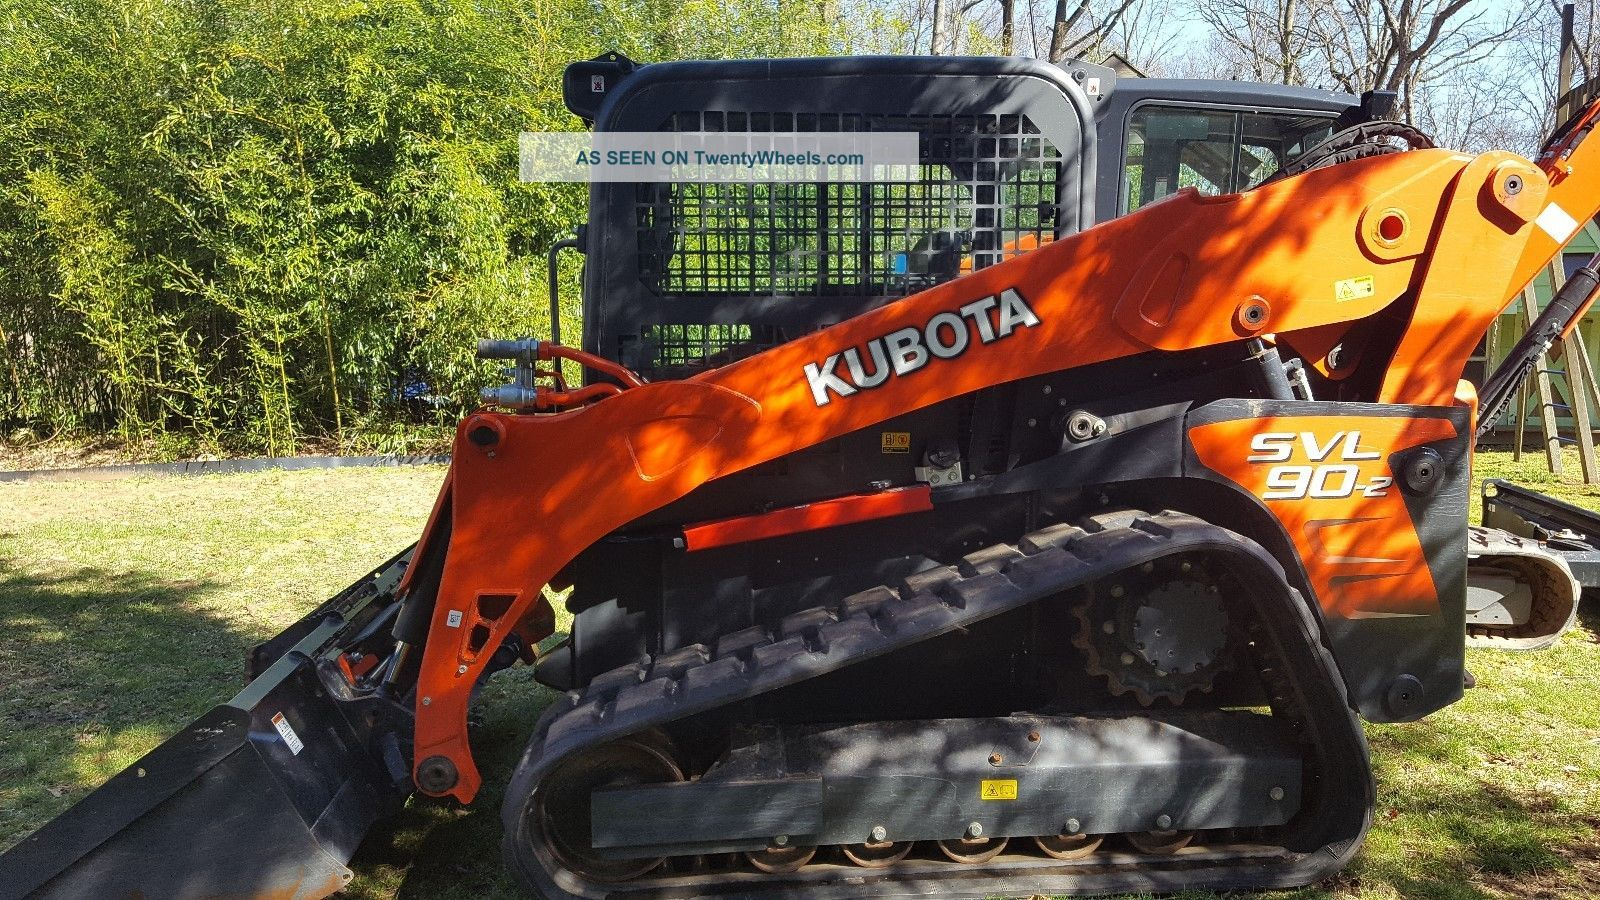 2016 Kubota Svl90 Loaded Only 100 Hours Skid Steer Loaders photo